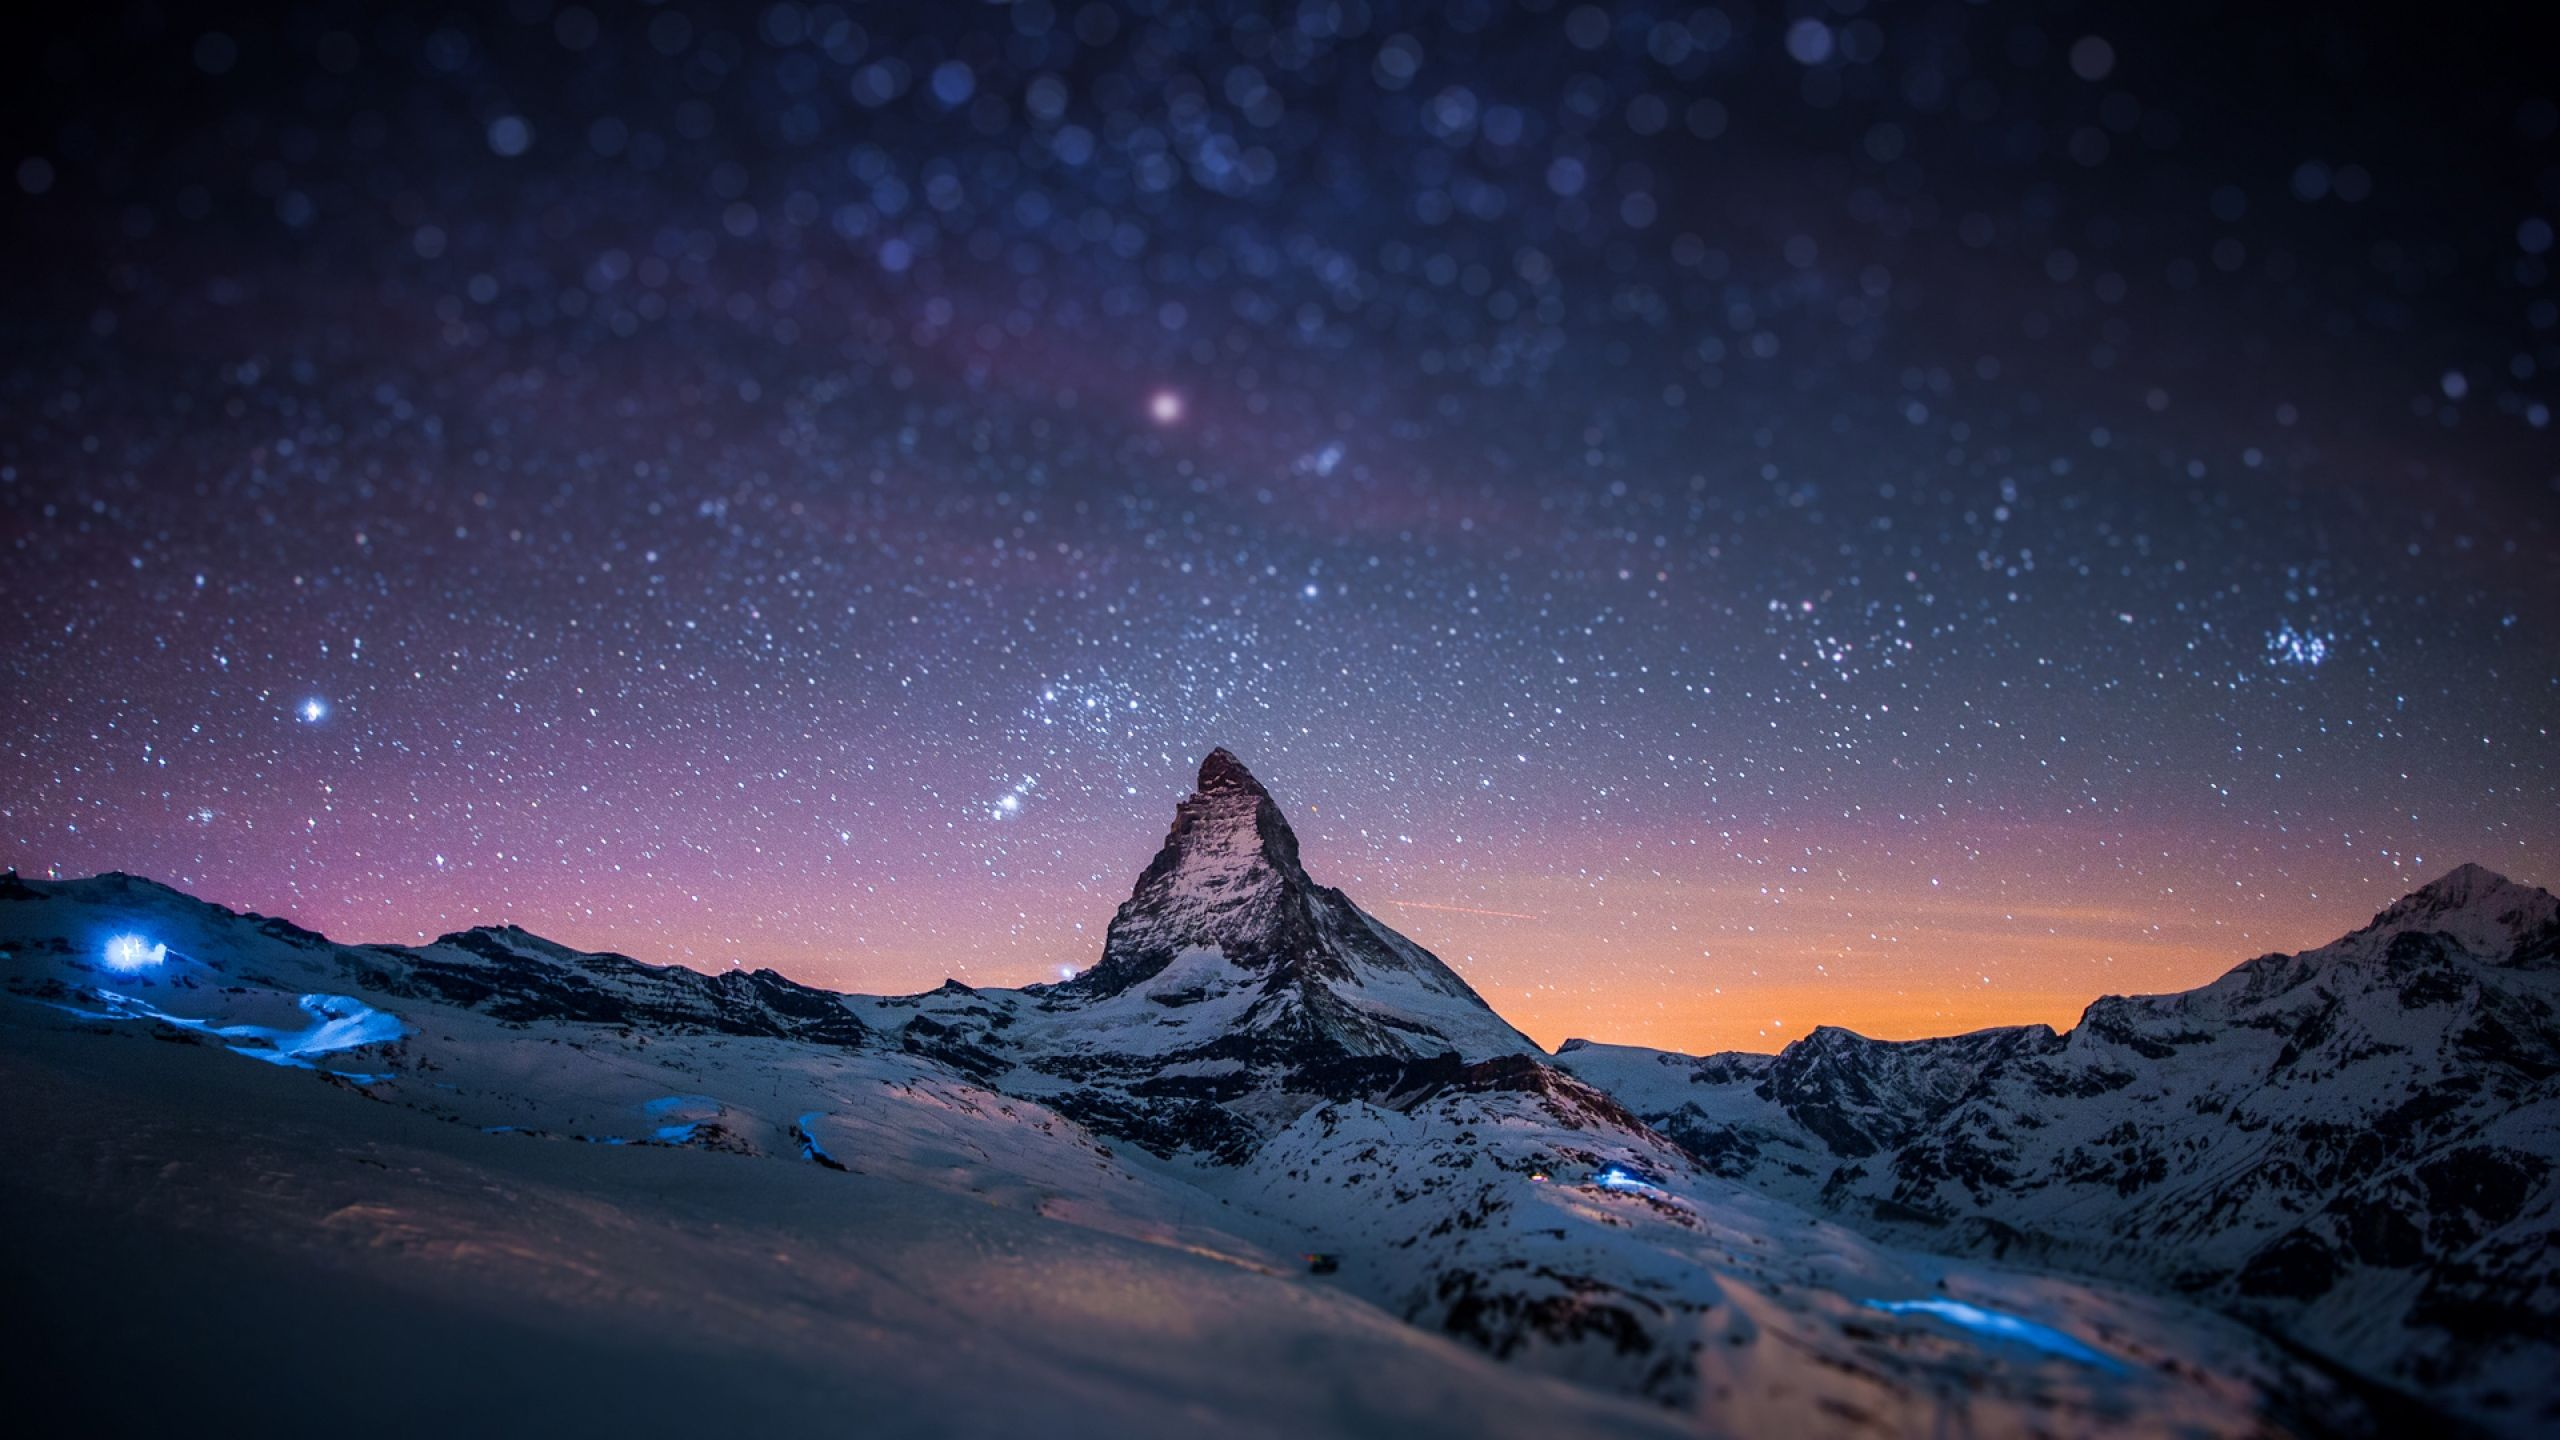 Imac Wallpapers. | Art: phone backgrounds in 2019 | Mountain wallpaper, Starry night sky, Travel